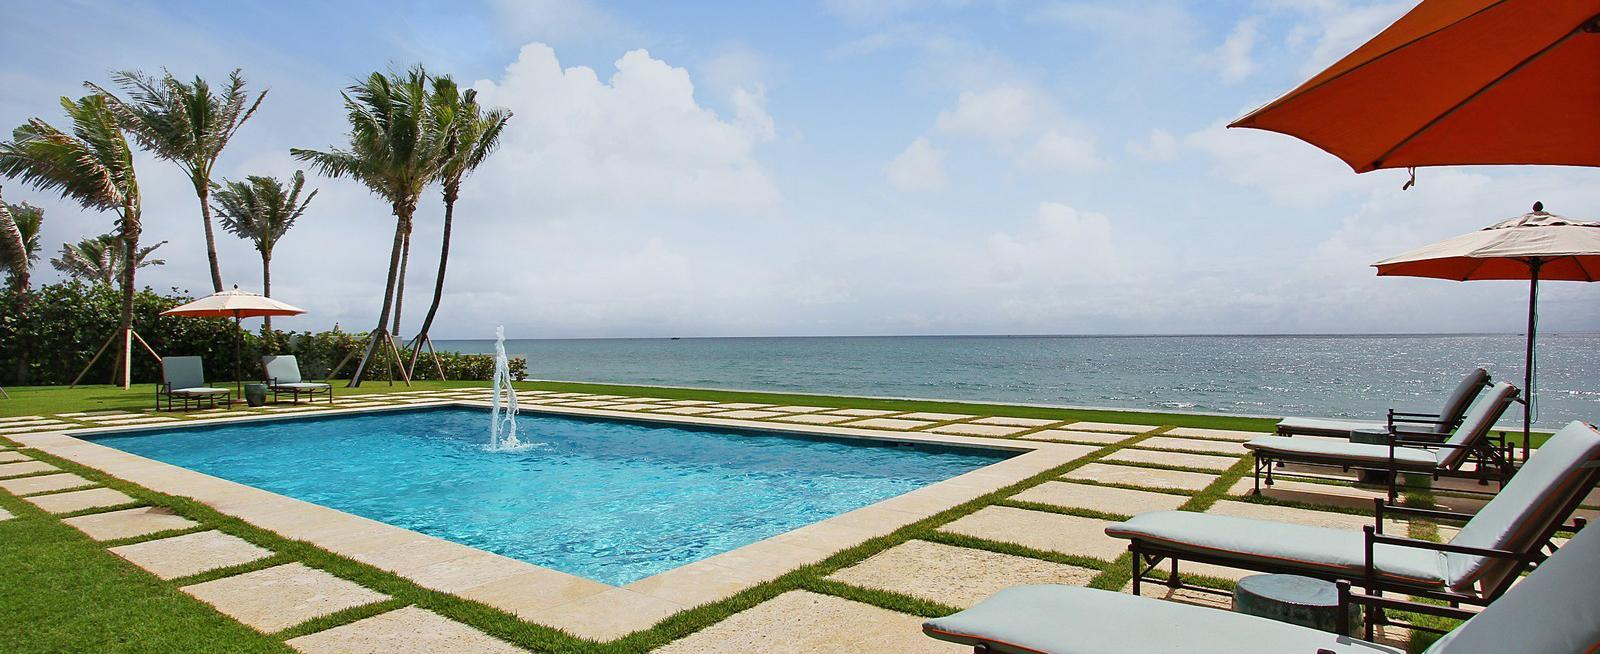 highland beach best real estate deals by square foot